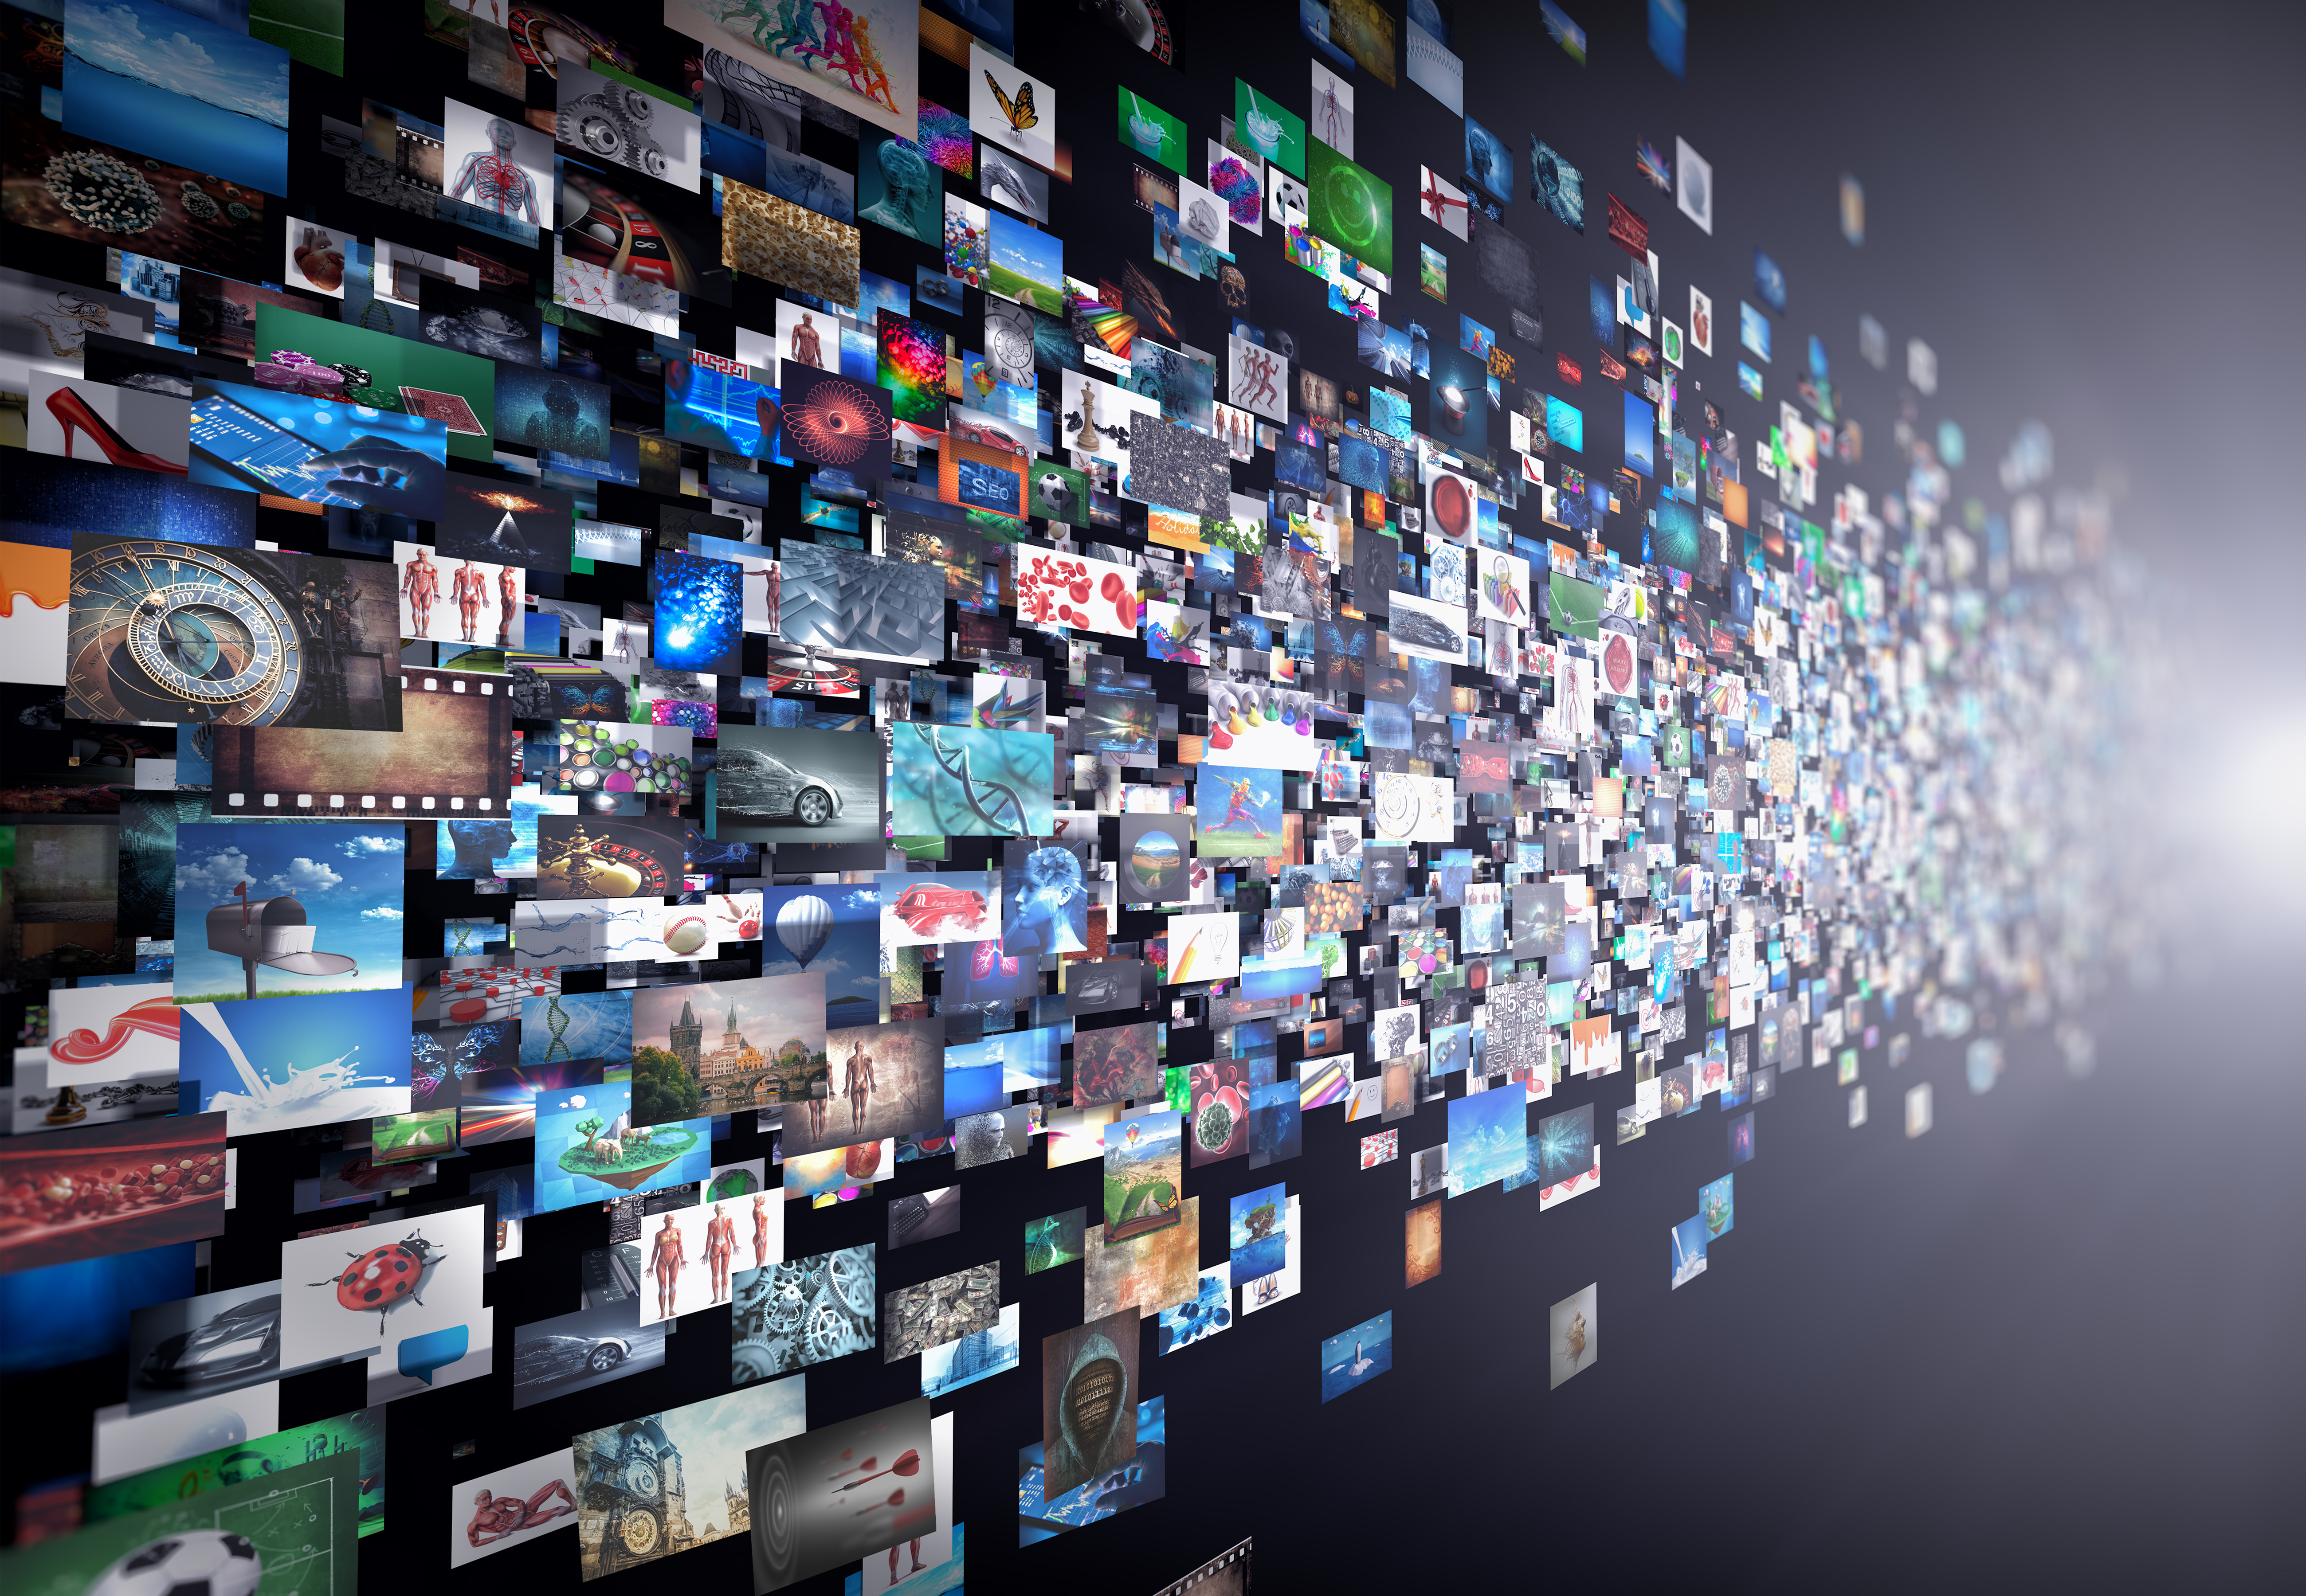 Why cloud-based delivery of OTT video applications makes sense